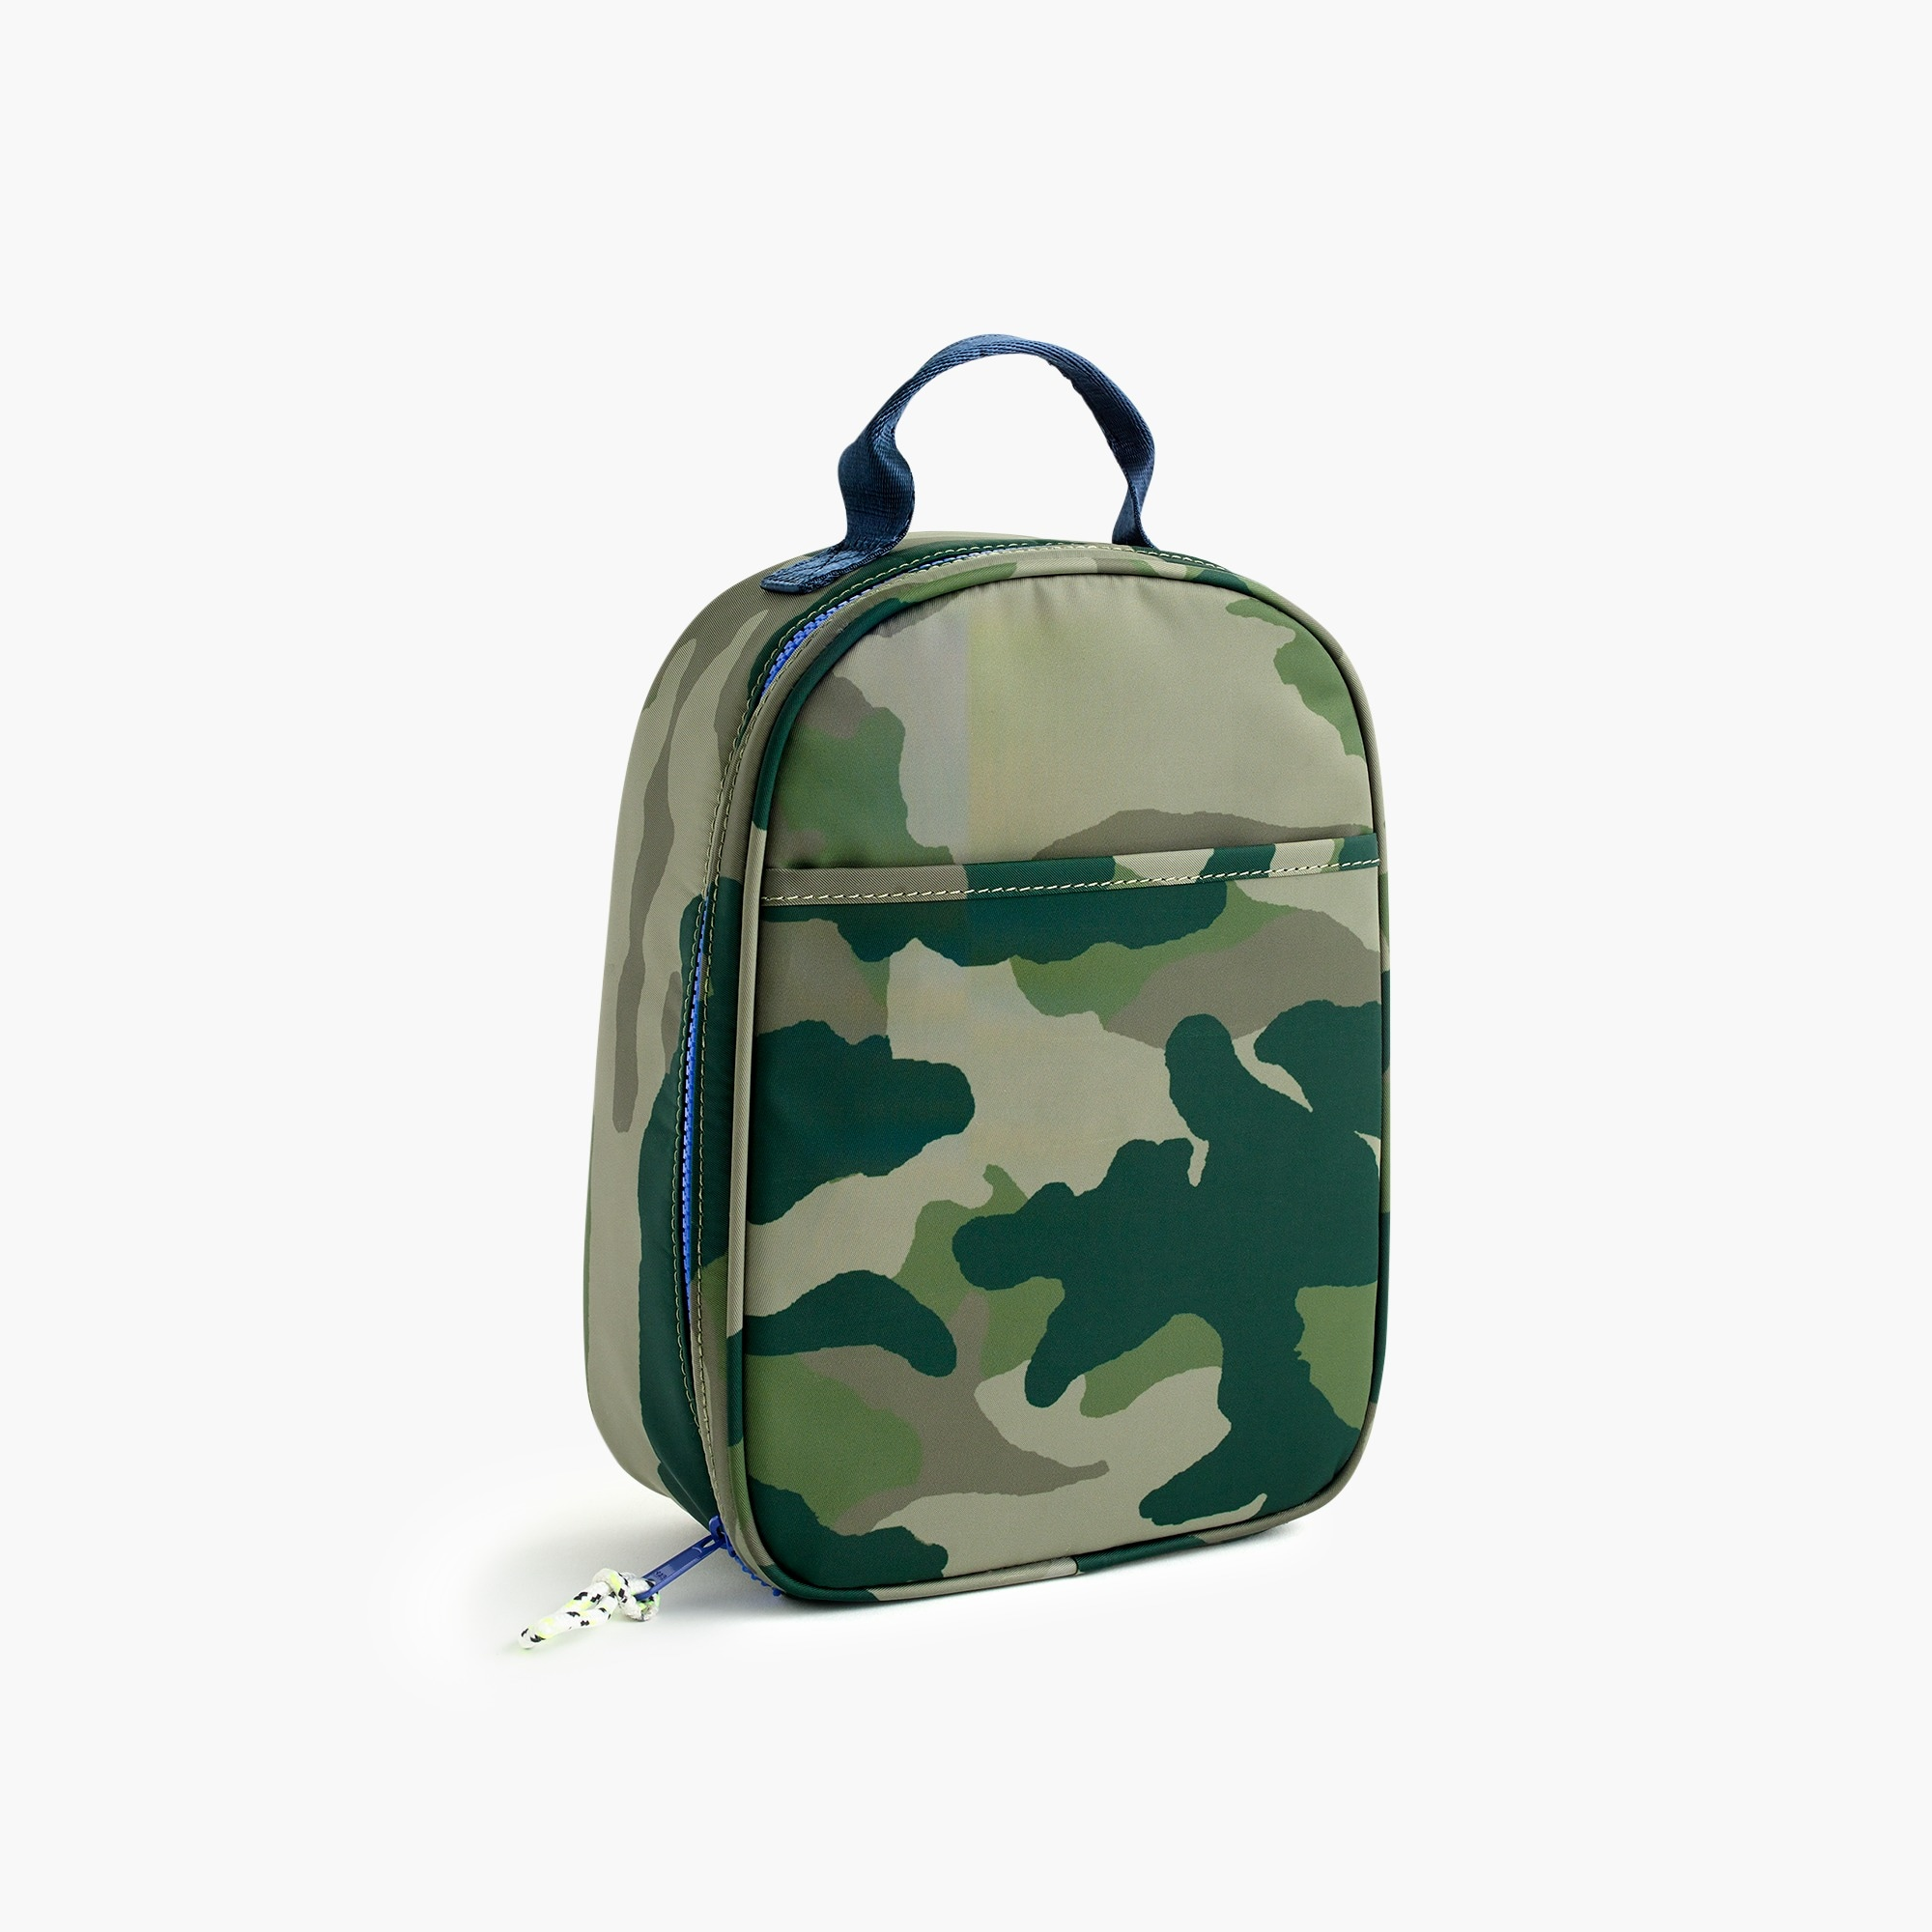 Kids' camo-print lunch box boy new arrivals c